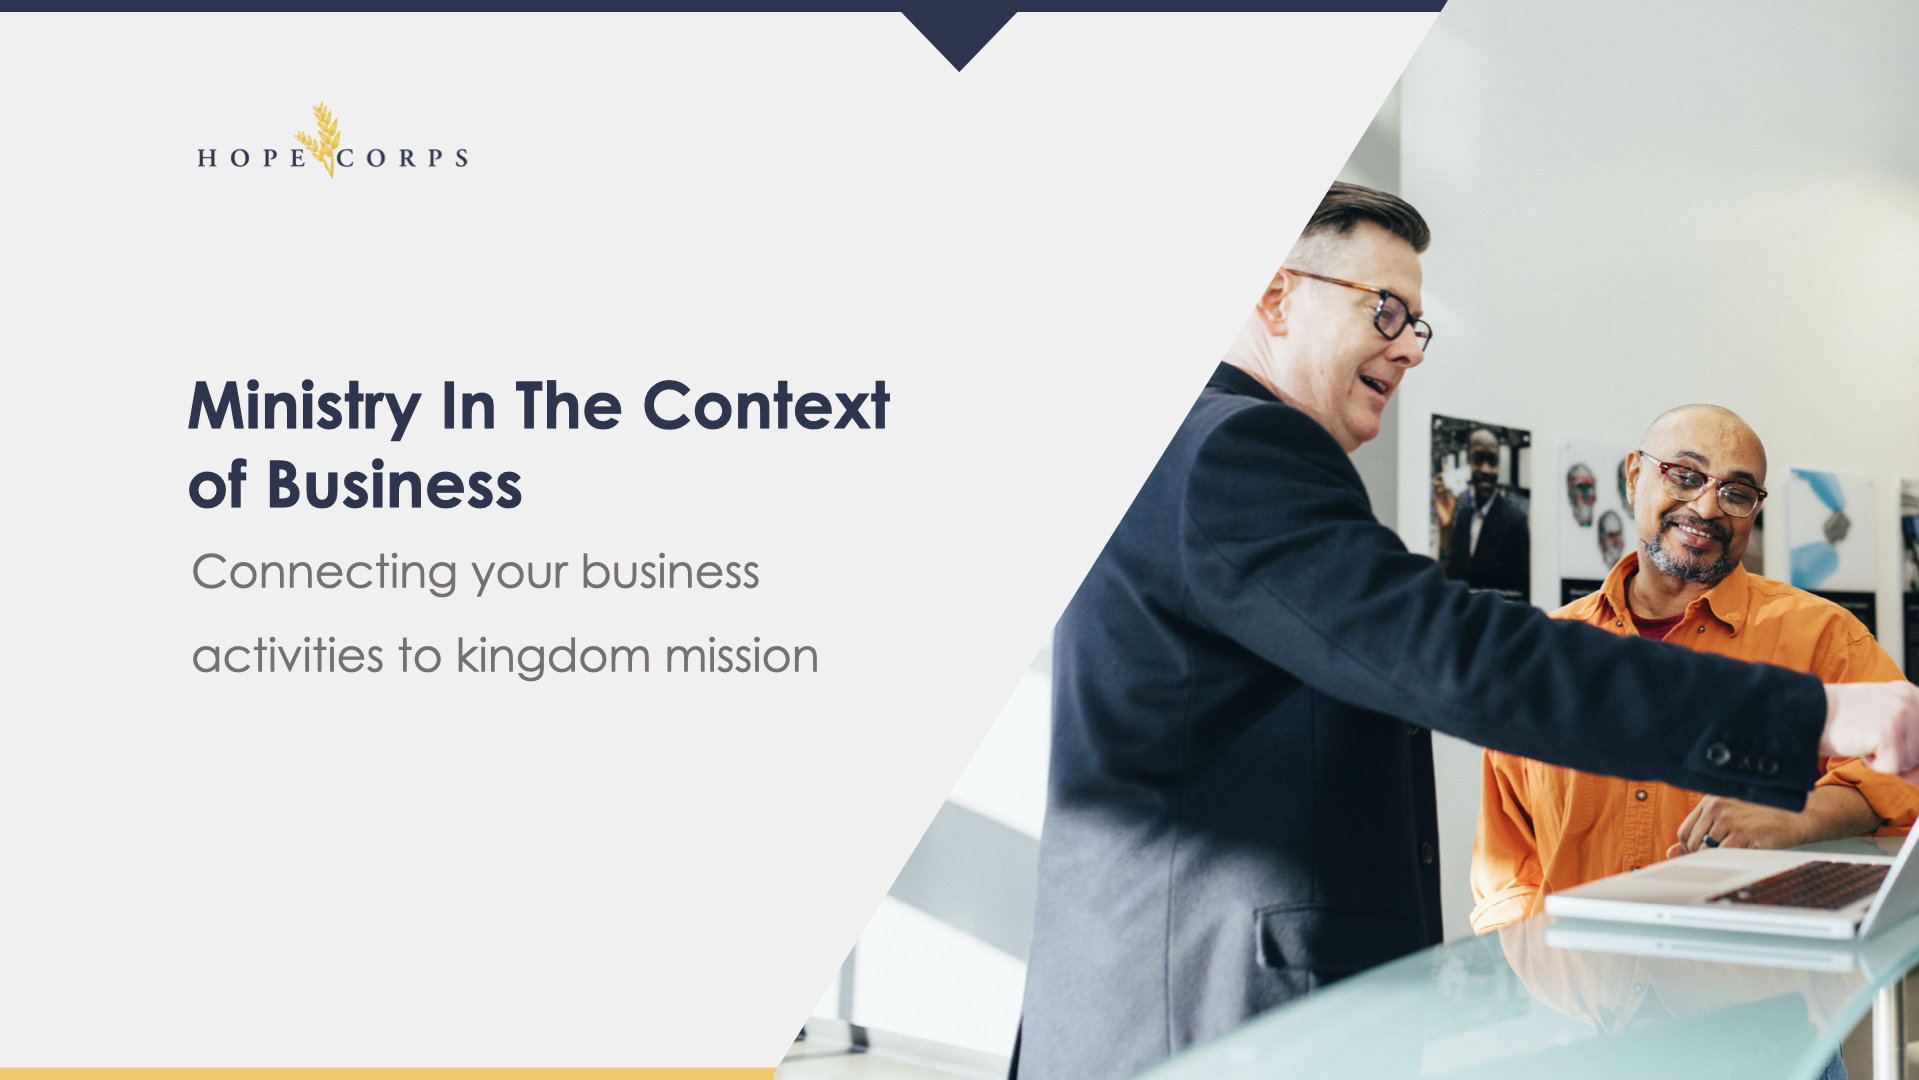 Hope Corps BAM | Ministry In The Context Of Business